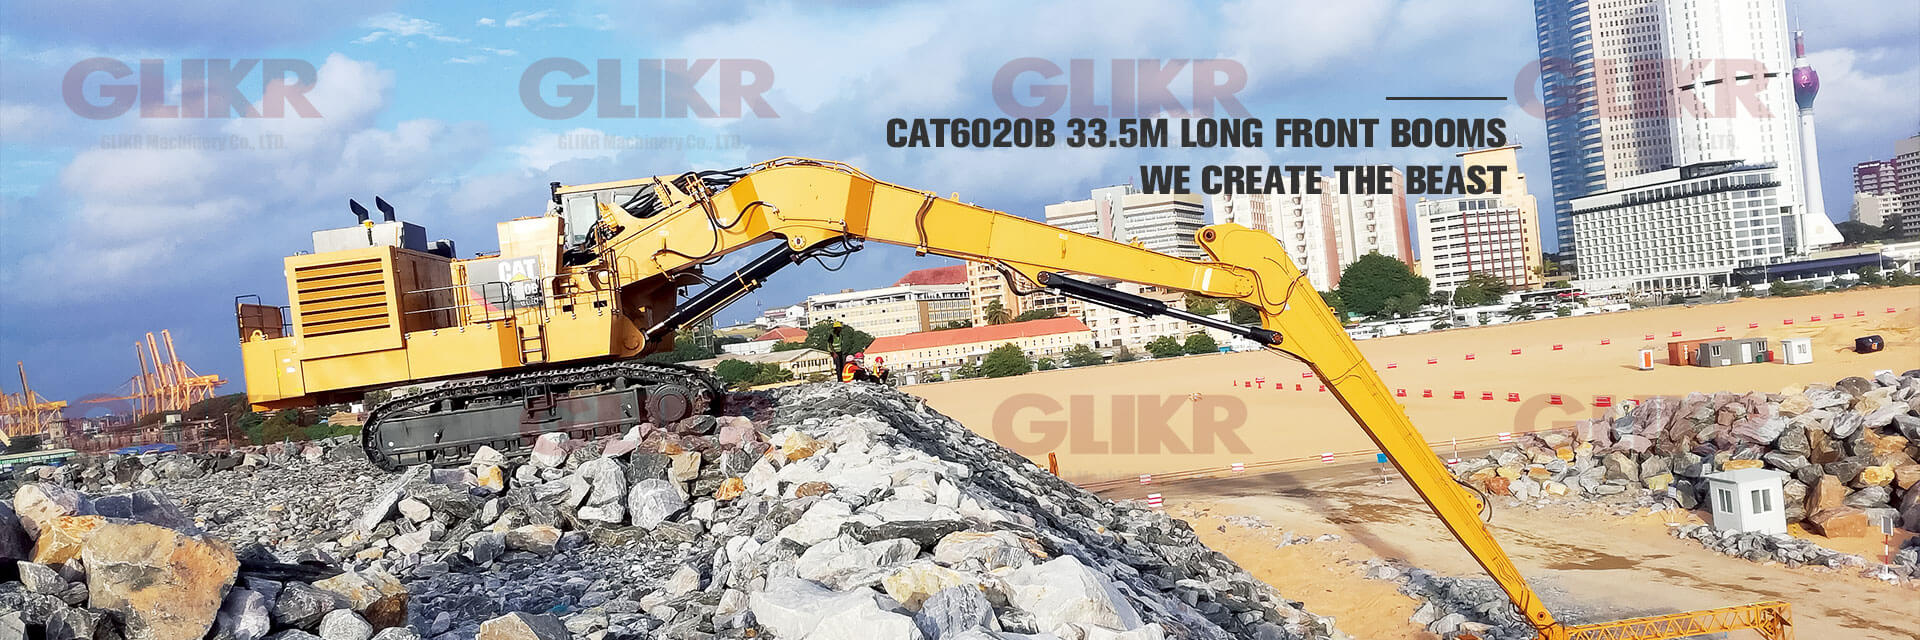 CAT6020B 33.5M LONG FRONT BOOMS - WE CREATE THE BEAST!